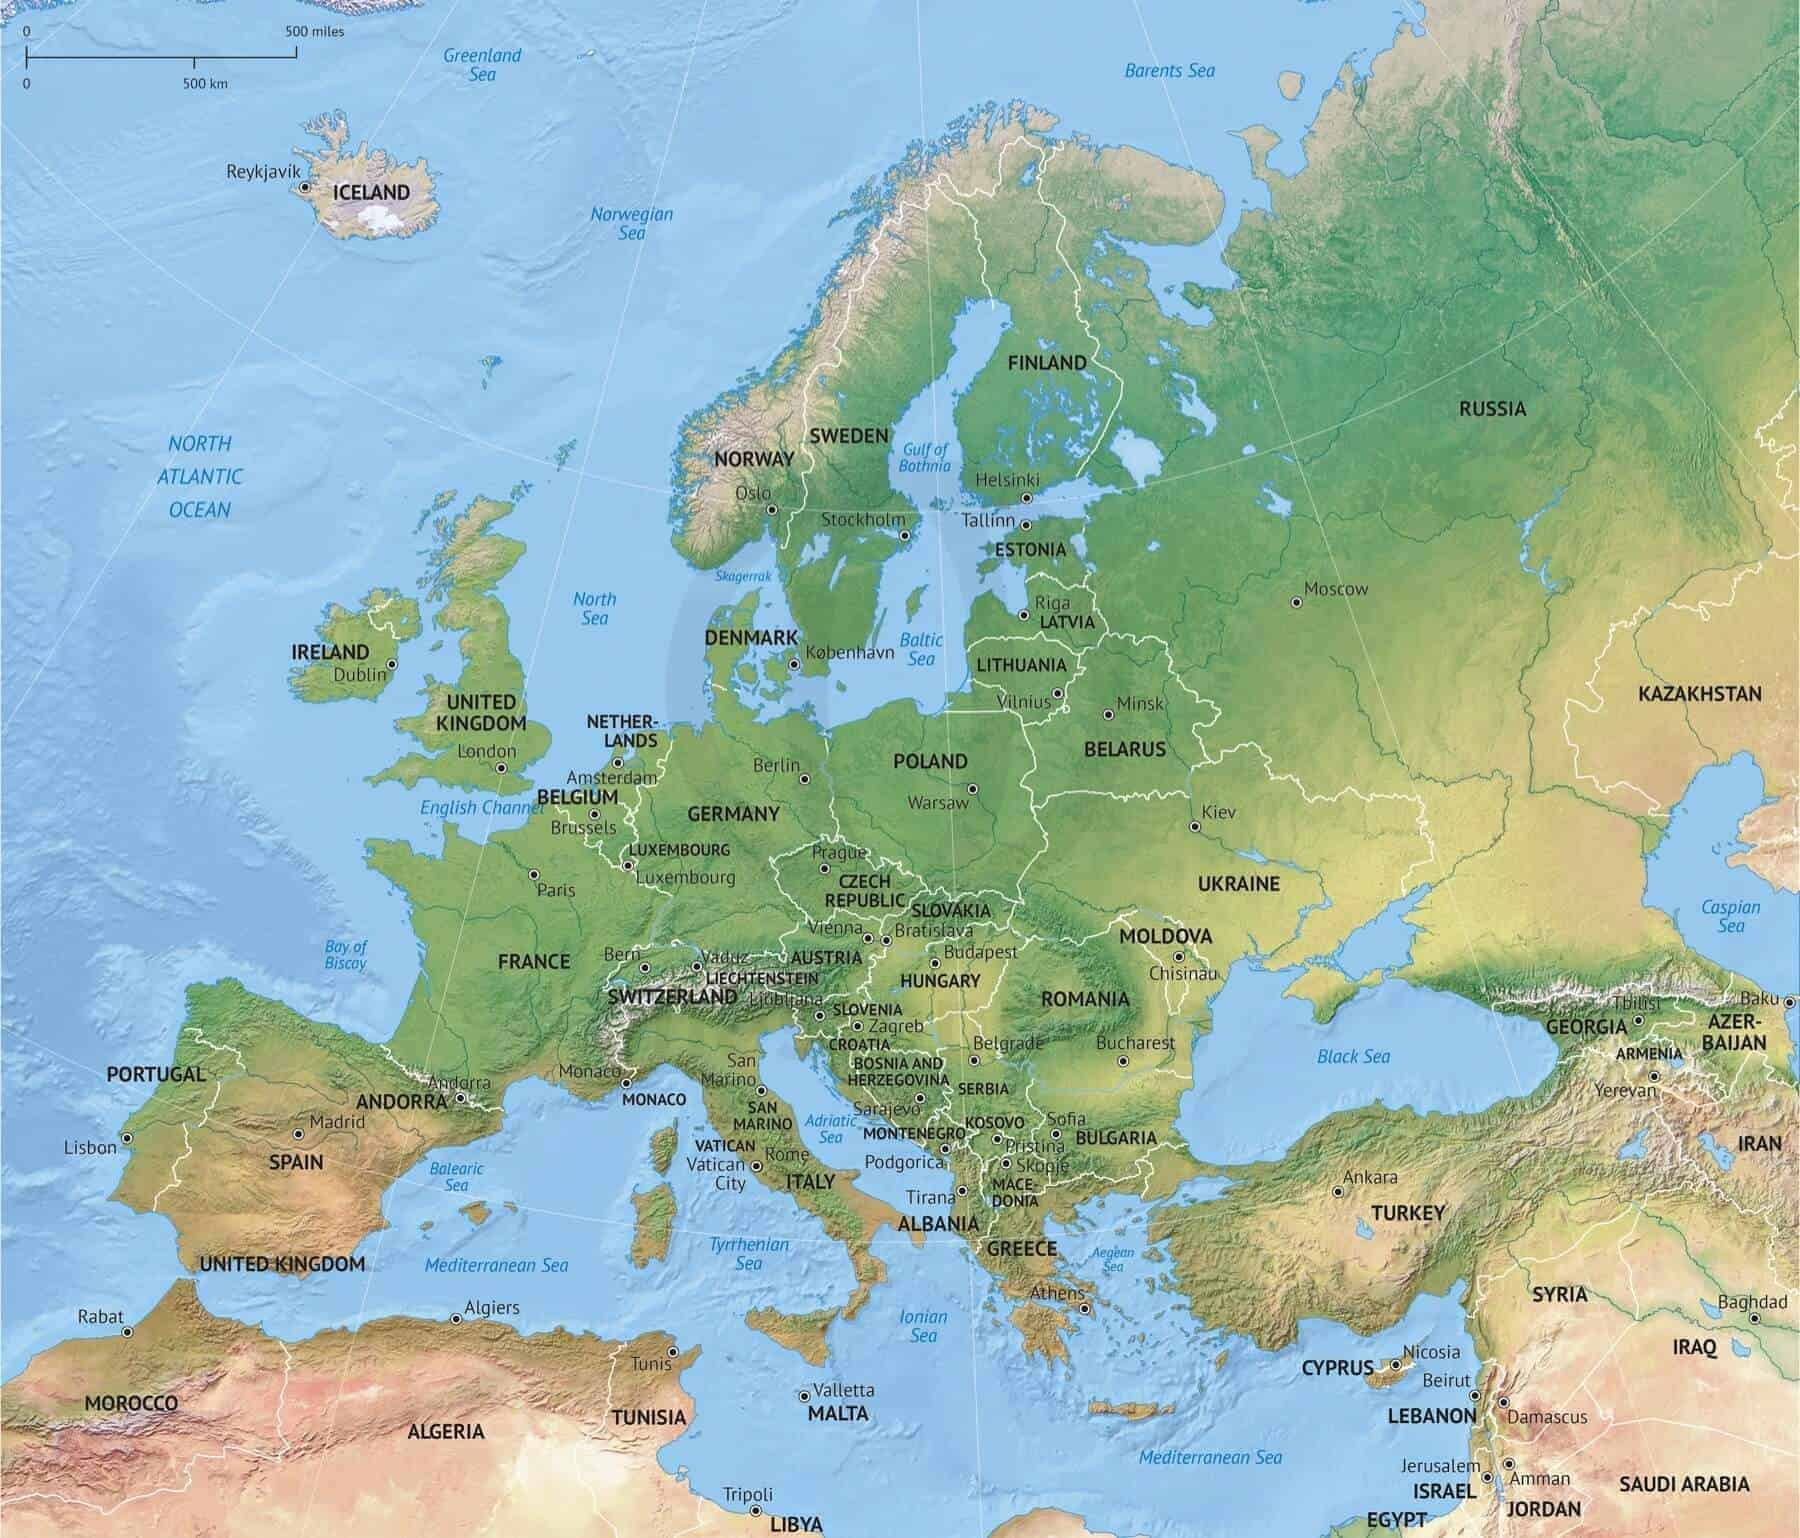 Europe Map.Vector Map Europe Continent Shaded Relief One Stop Map